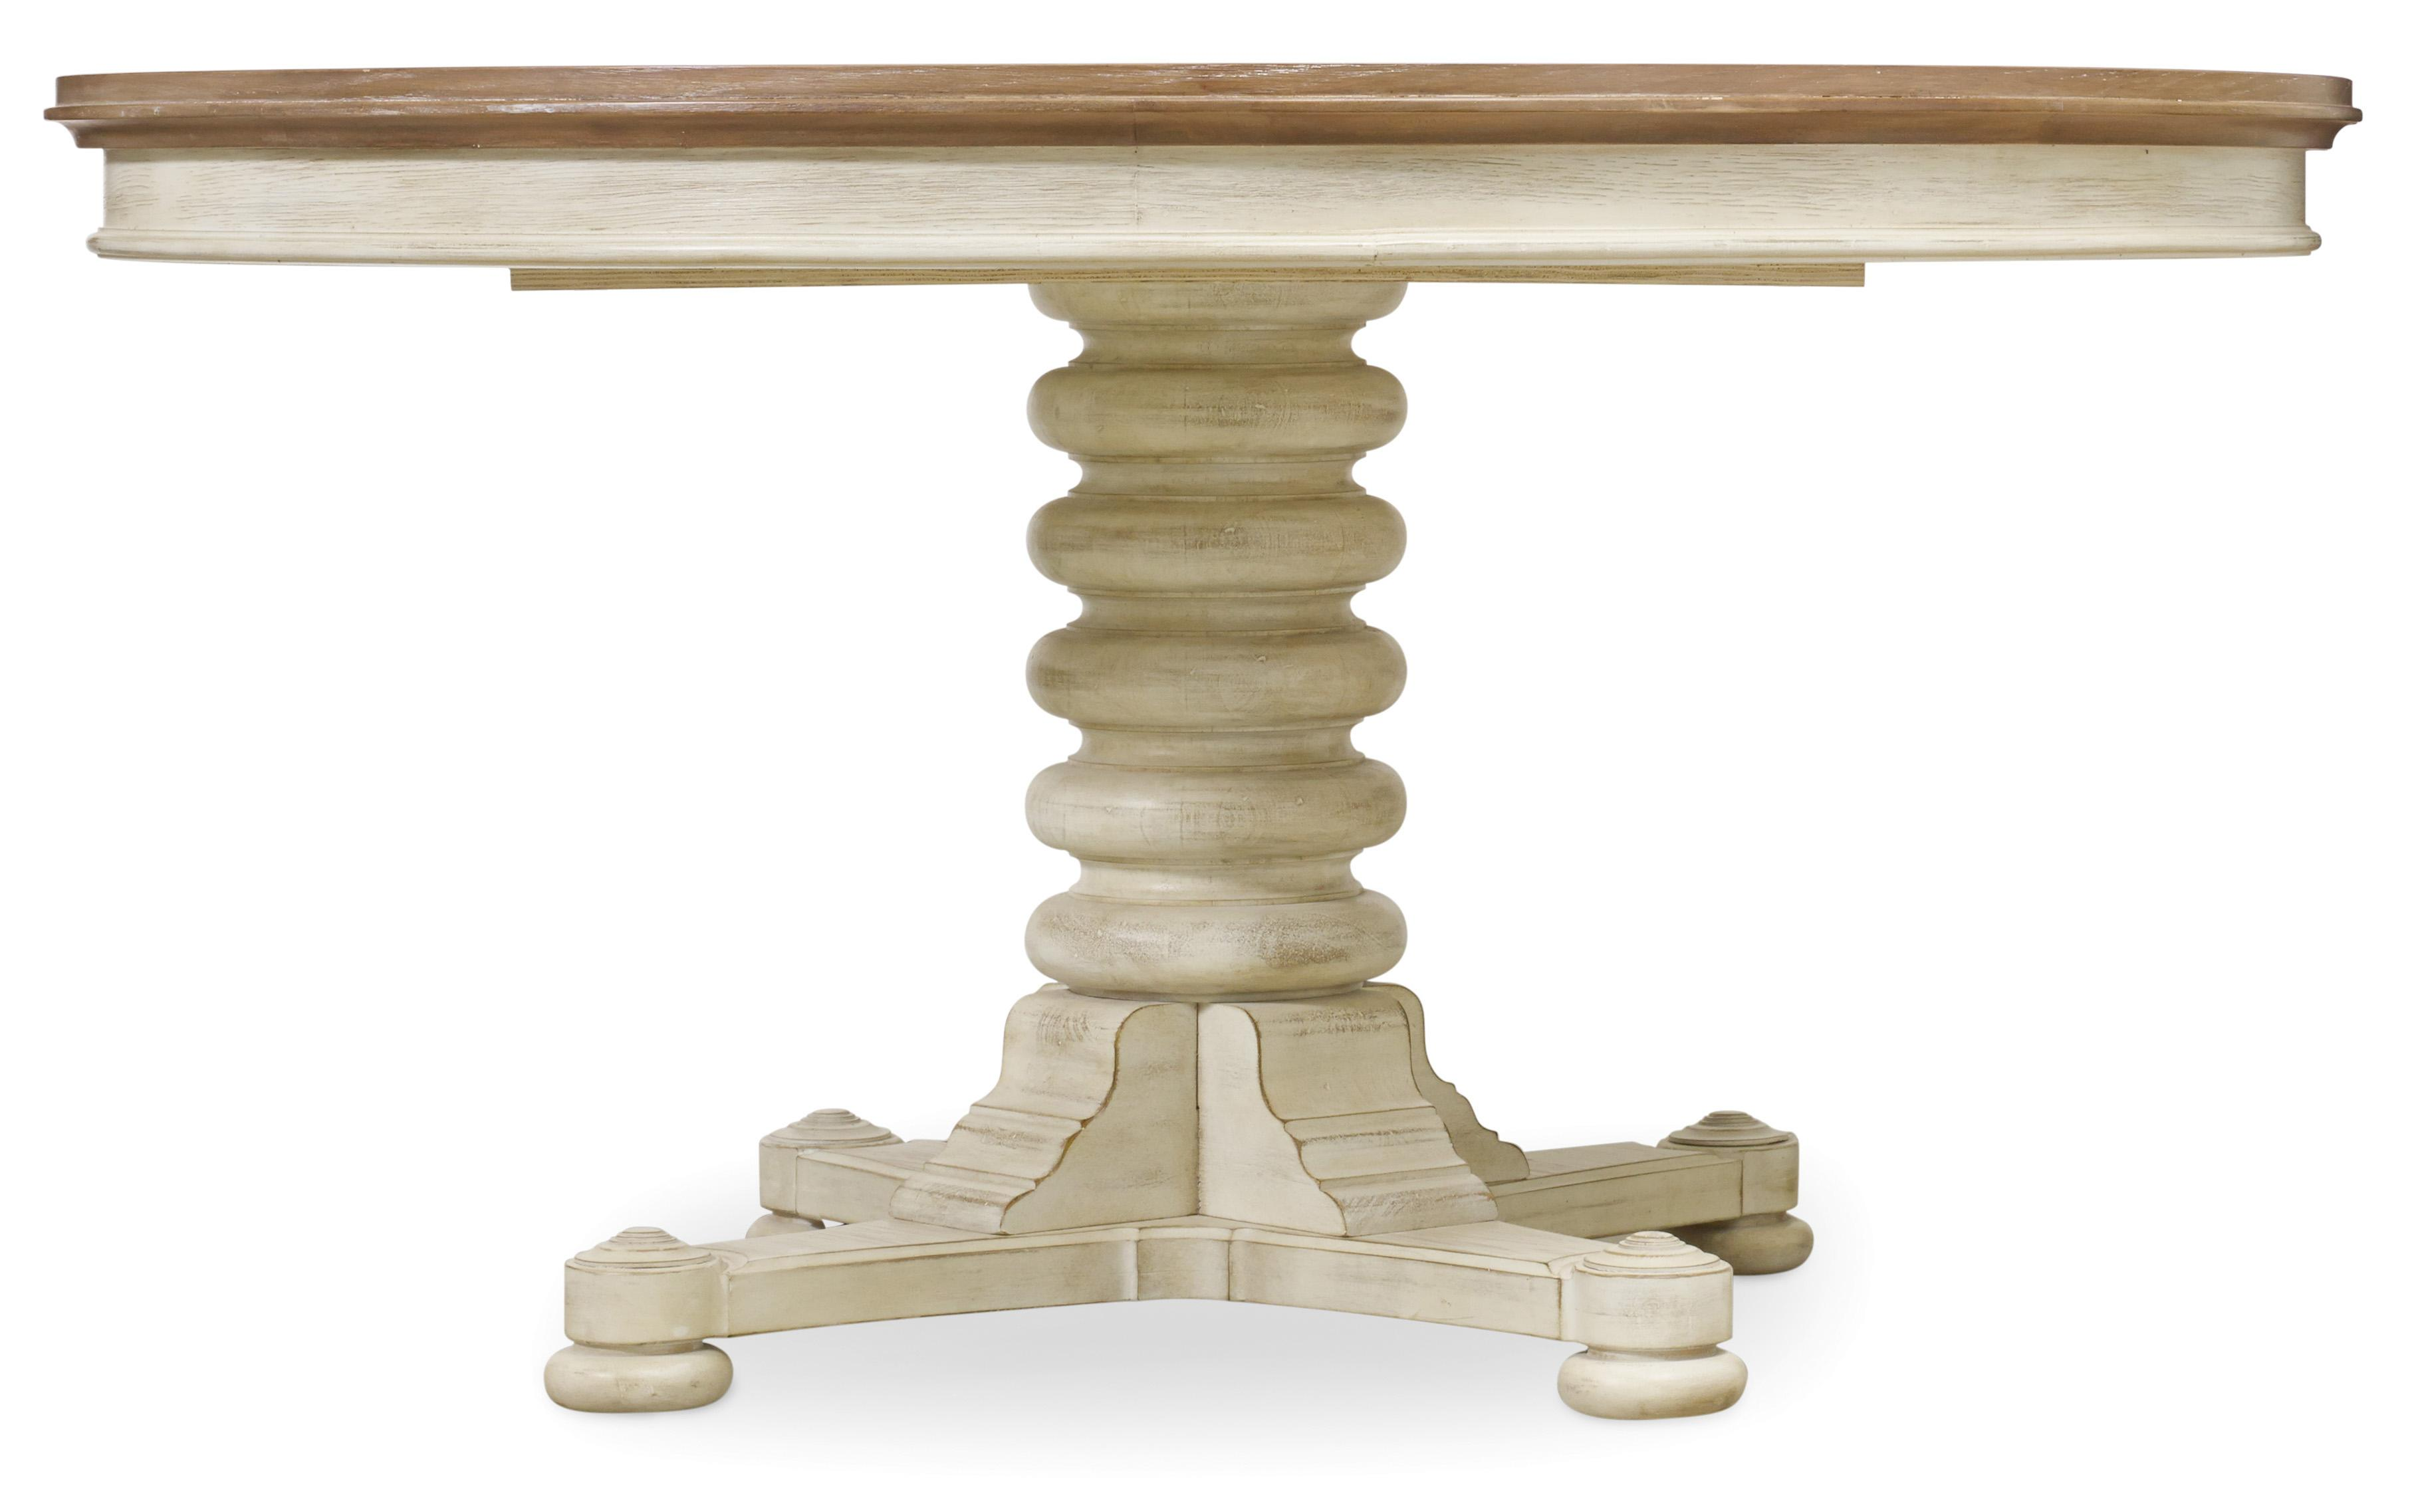 Hooker Furniture Sunset Point Convertible Pedestal Dining Table - Item Number: 5325-75203